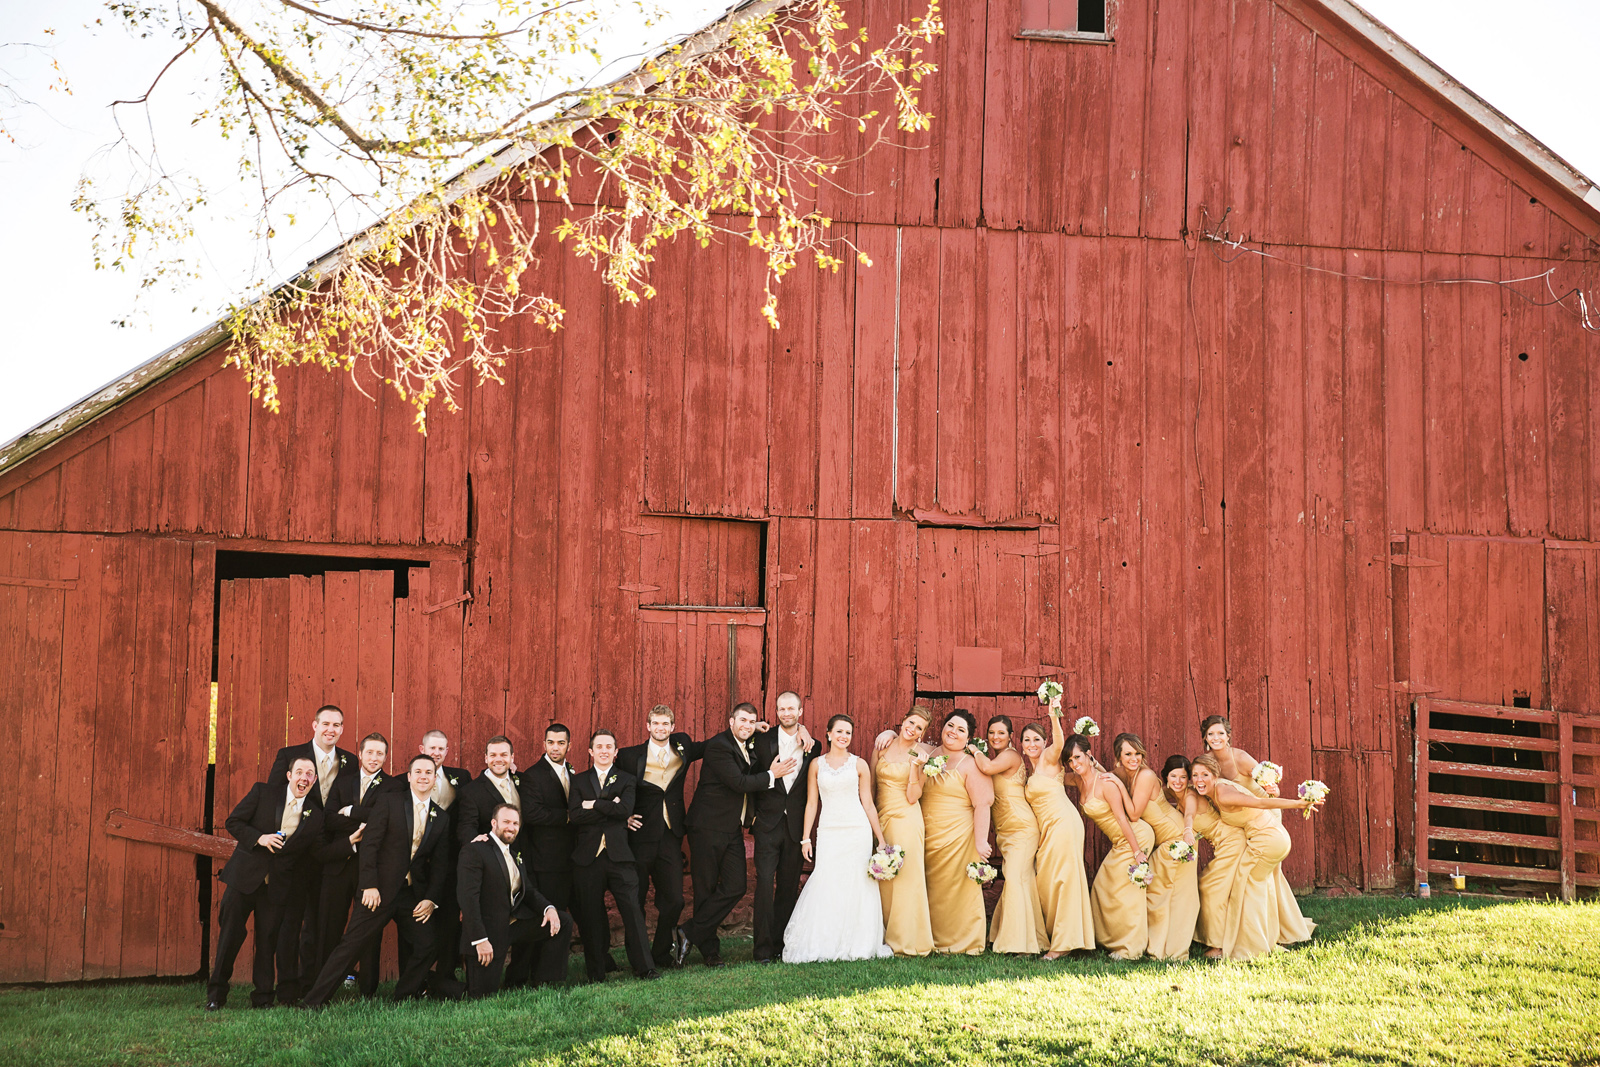 Oldani Photography-St Charles-Wentzville-St Paul-classic cars-red barn-wedding party-wedding photographer-wedding photos_20141025_16435300.jpg